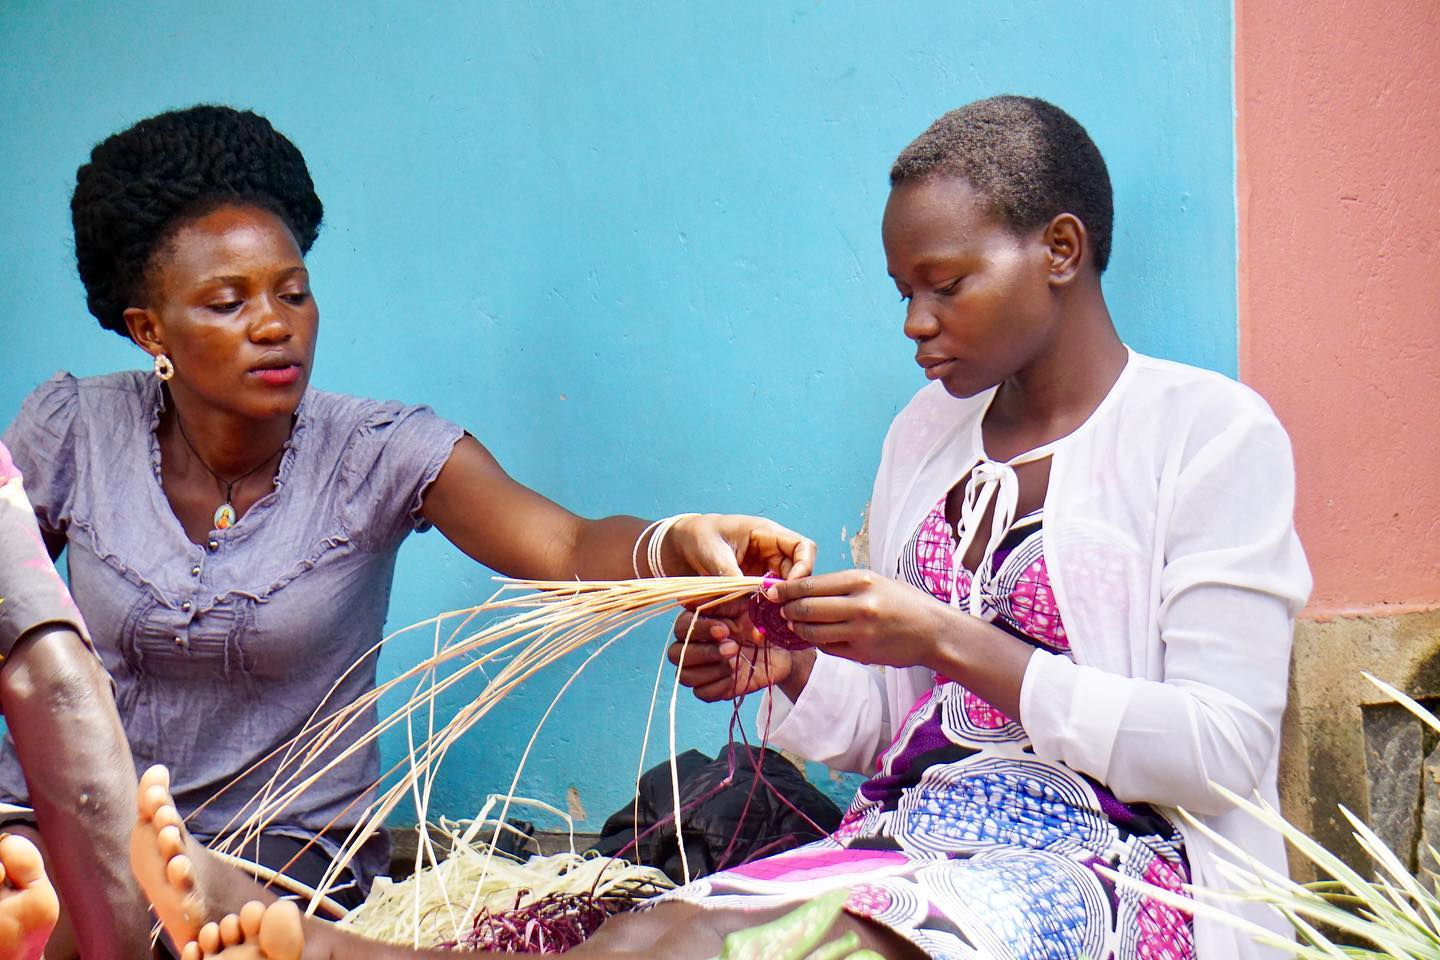 basket weaving - Our basket workshops are led by Phionah, a Ugandan entrepreneur and expert basket weaver in Kampala. Phionah travels 6 hours north to spend 3 days with our artisans teaching them unique techniques and investing in their potential. Her insight + encouragement allowed for the Artisans to thrive with this new skill and she even hired artisans for her business after our workshop.